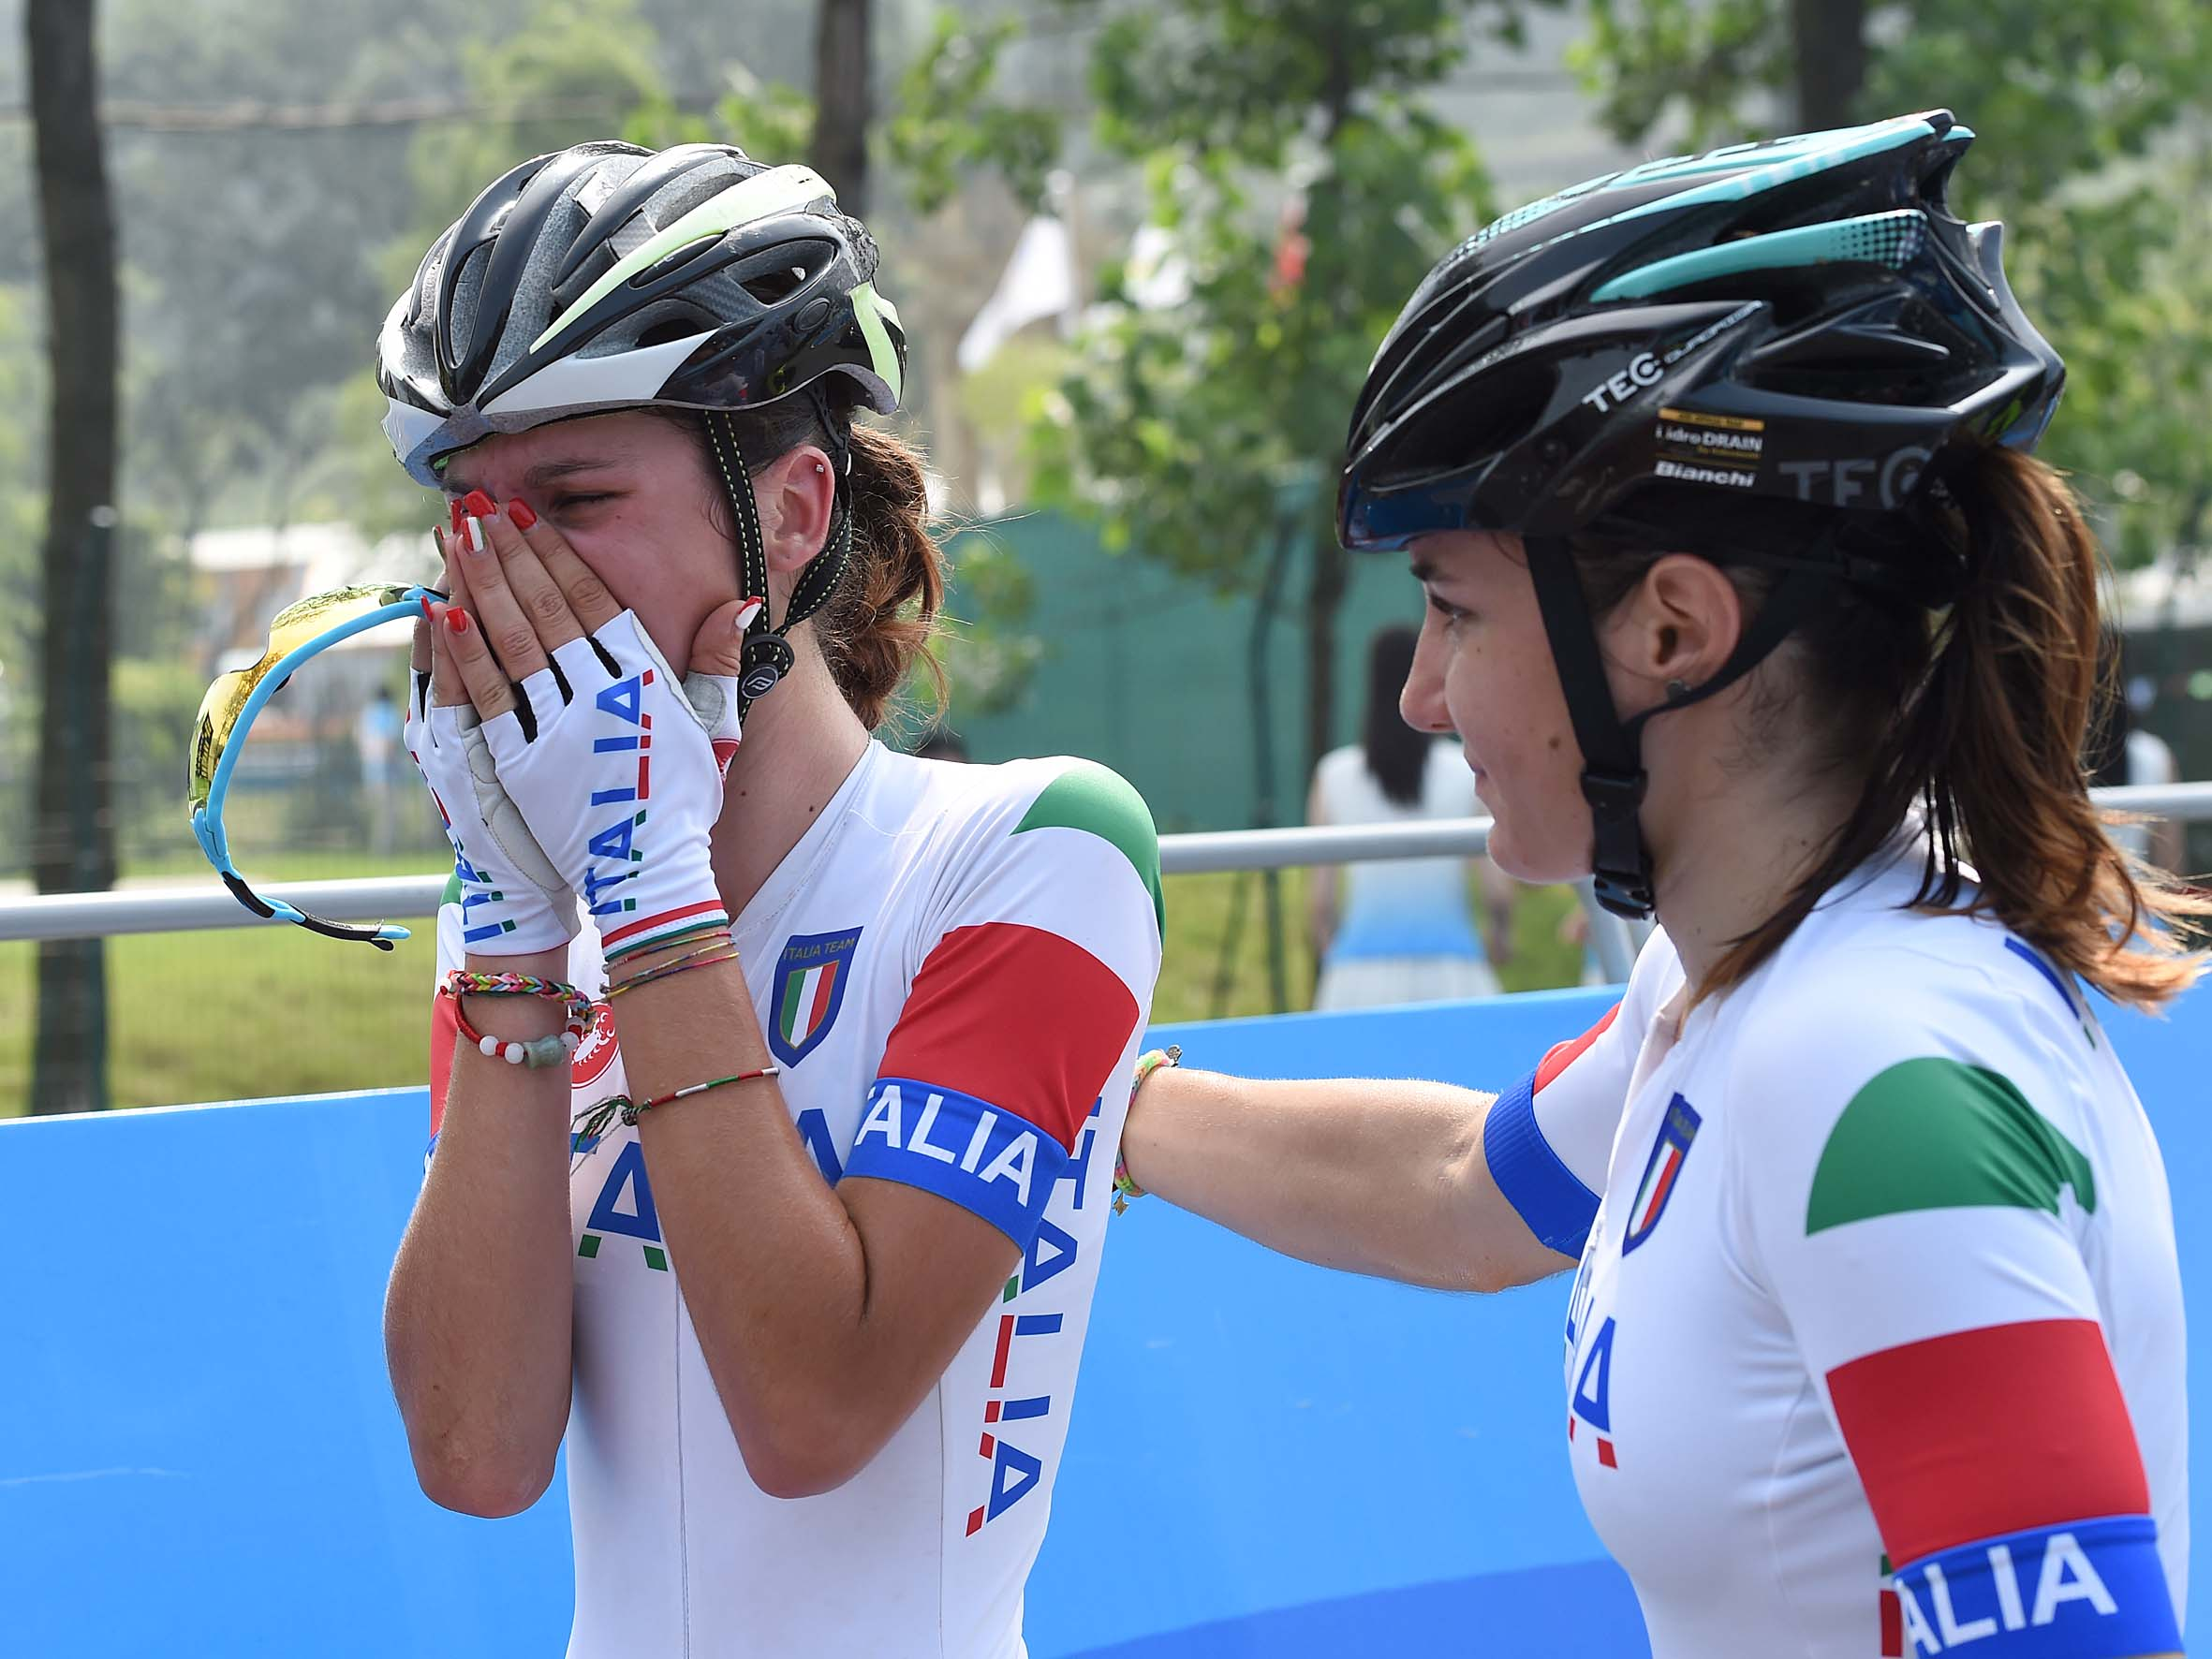 Ciclismo donne 09